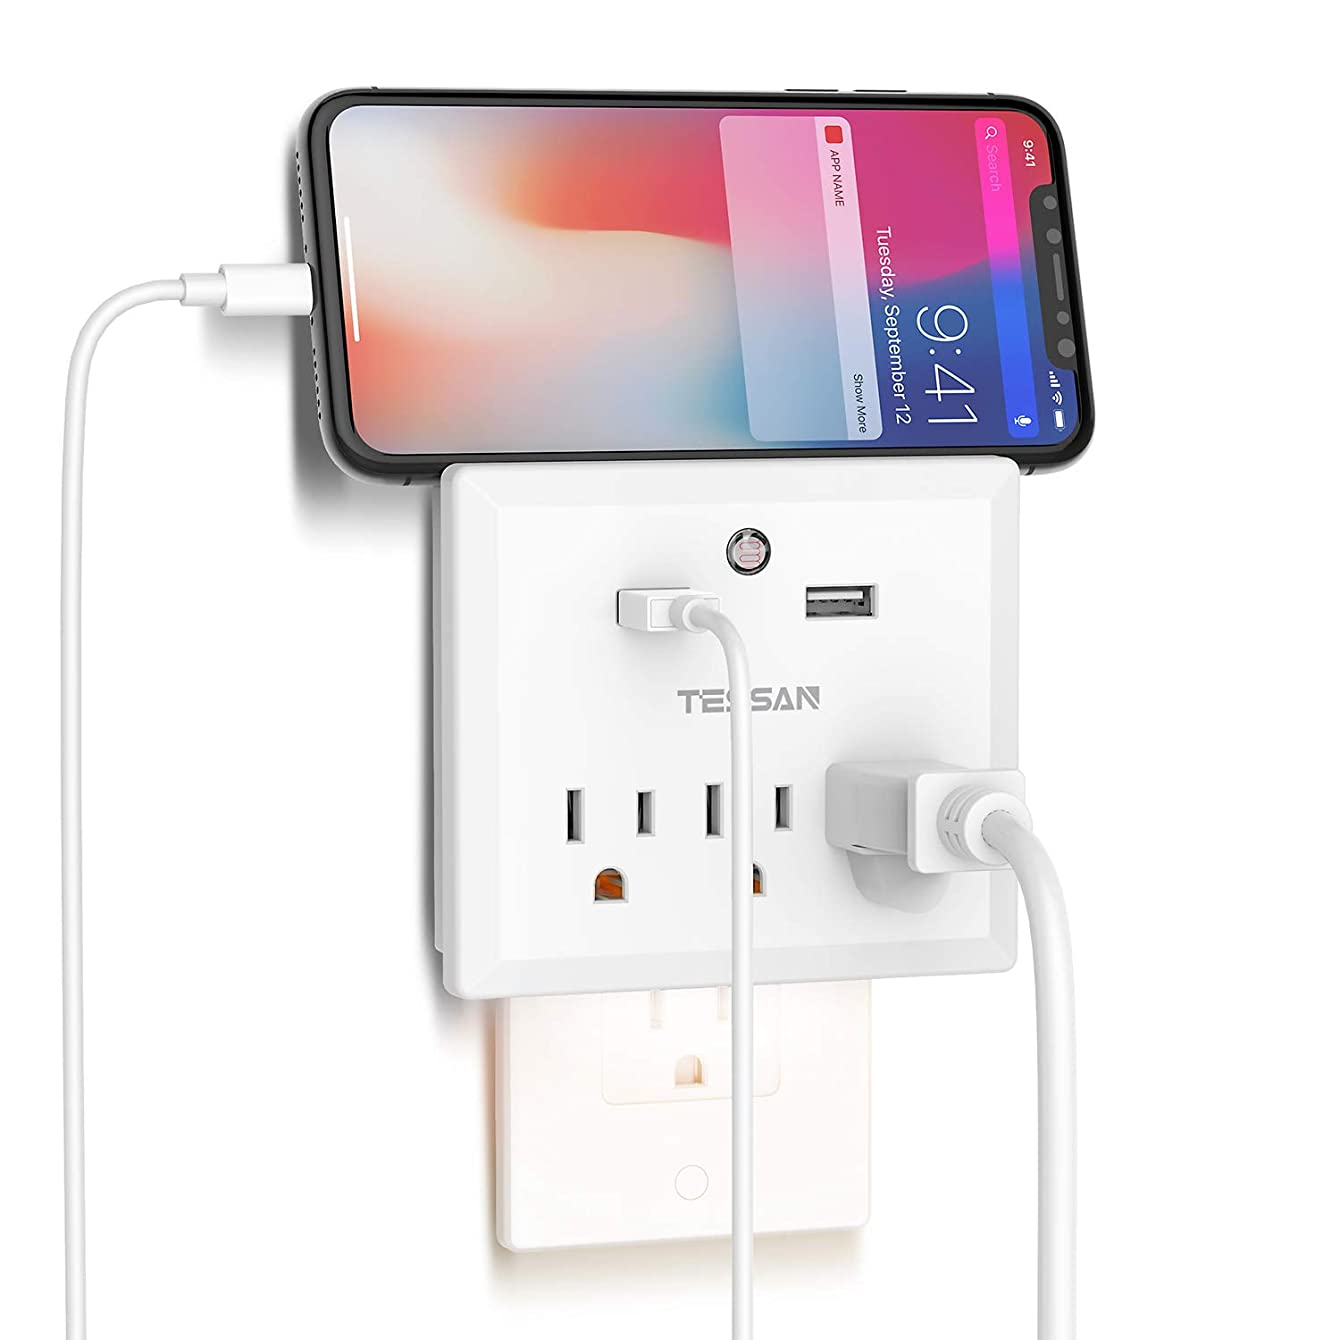 Multi Plug Outlet Extender with USB Wall Charger and Night Light, Cruise Ship Travel Power Strip with 2 USB 3 Outlet Splitter Adapter, Compatible with iPhone Charger Wall Plug